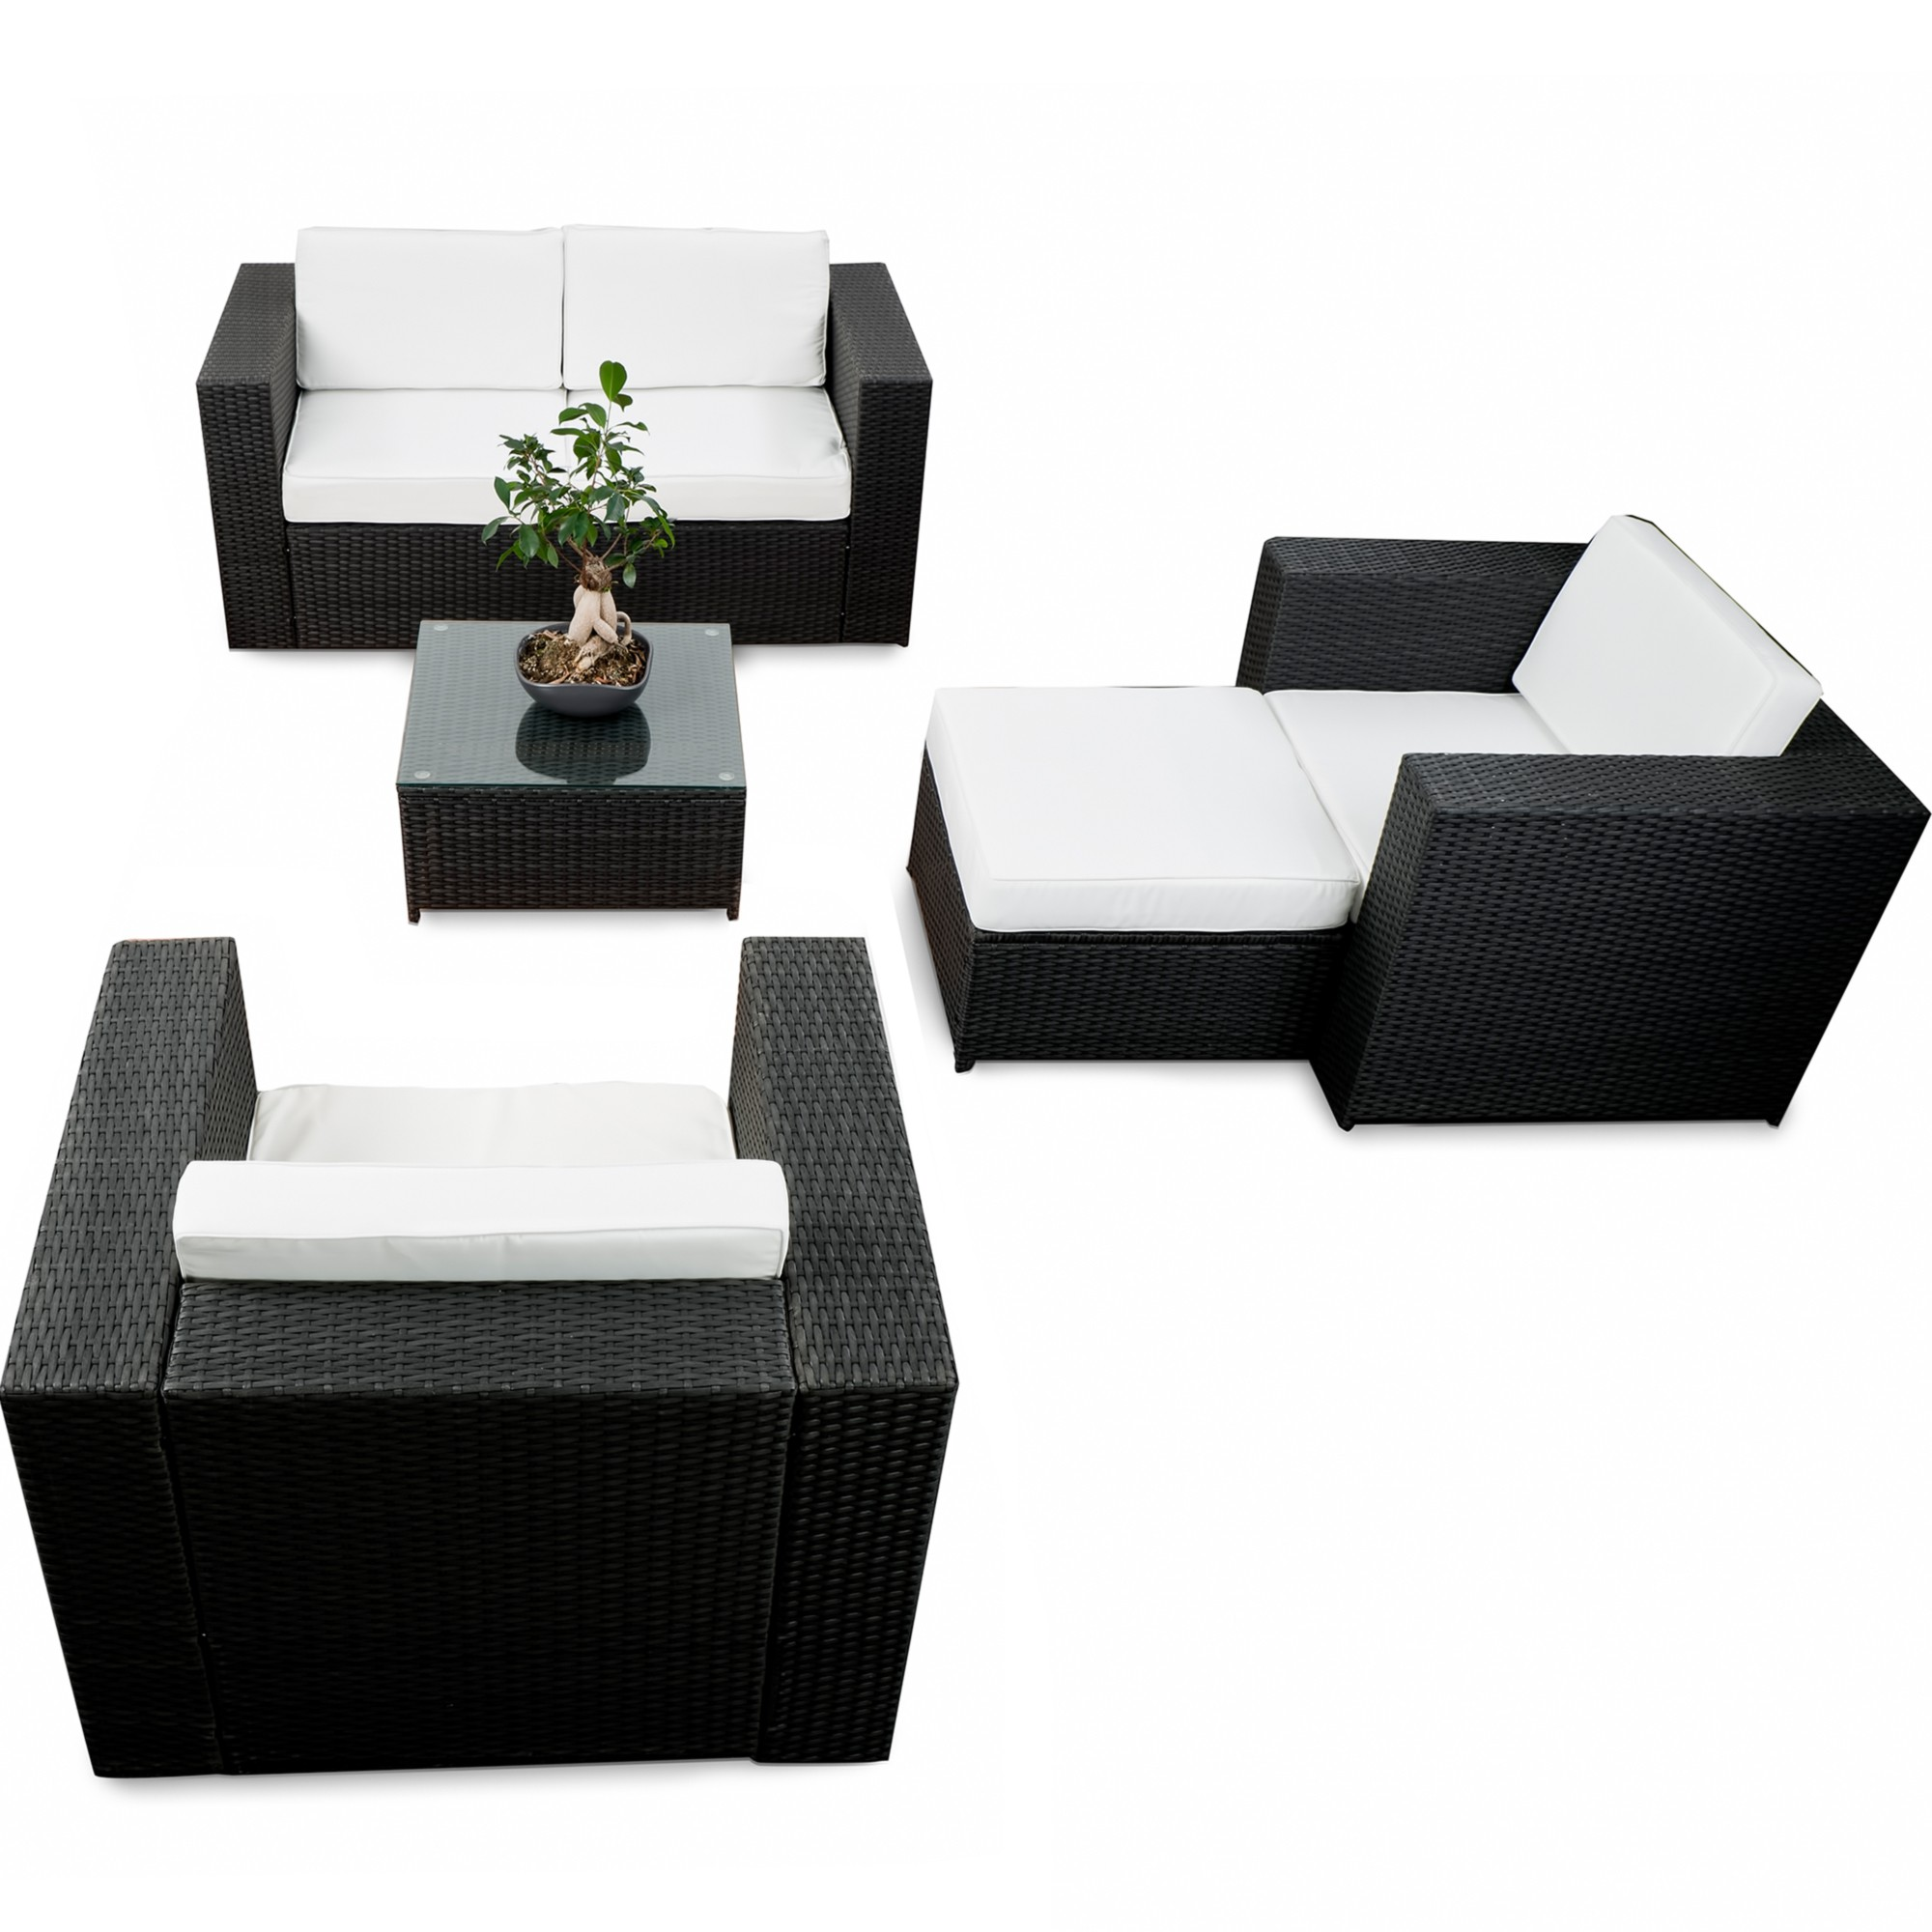 gartenm bel set lounge g nstig garten loungem bel set kaufen. Black Bedroom Furniture Sets. Home Design Ideas